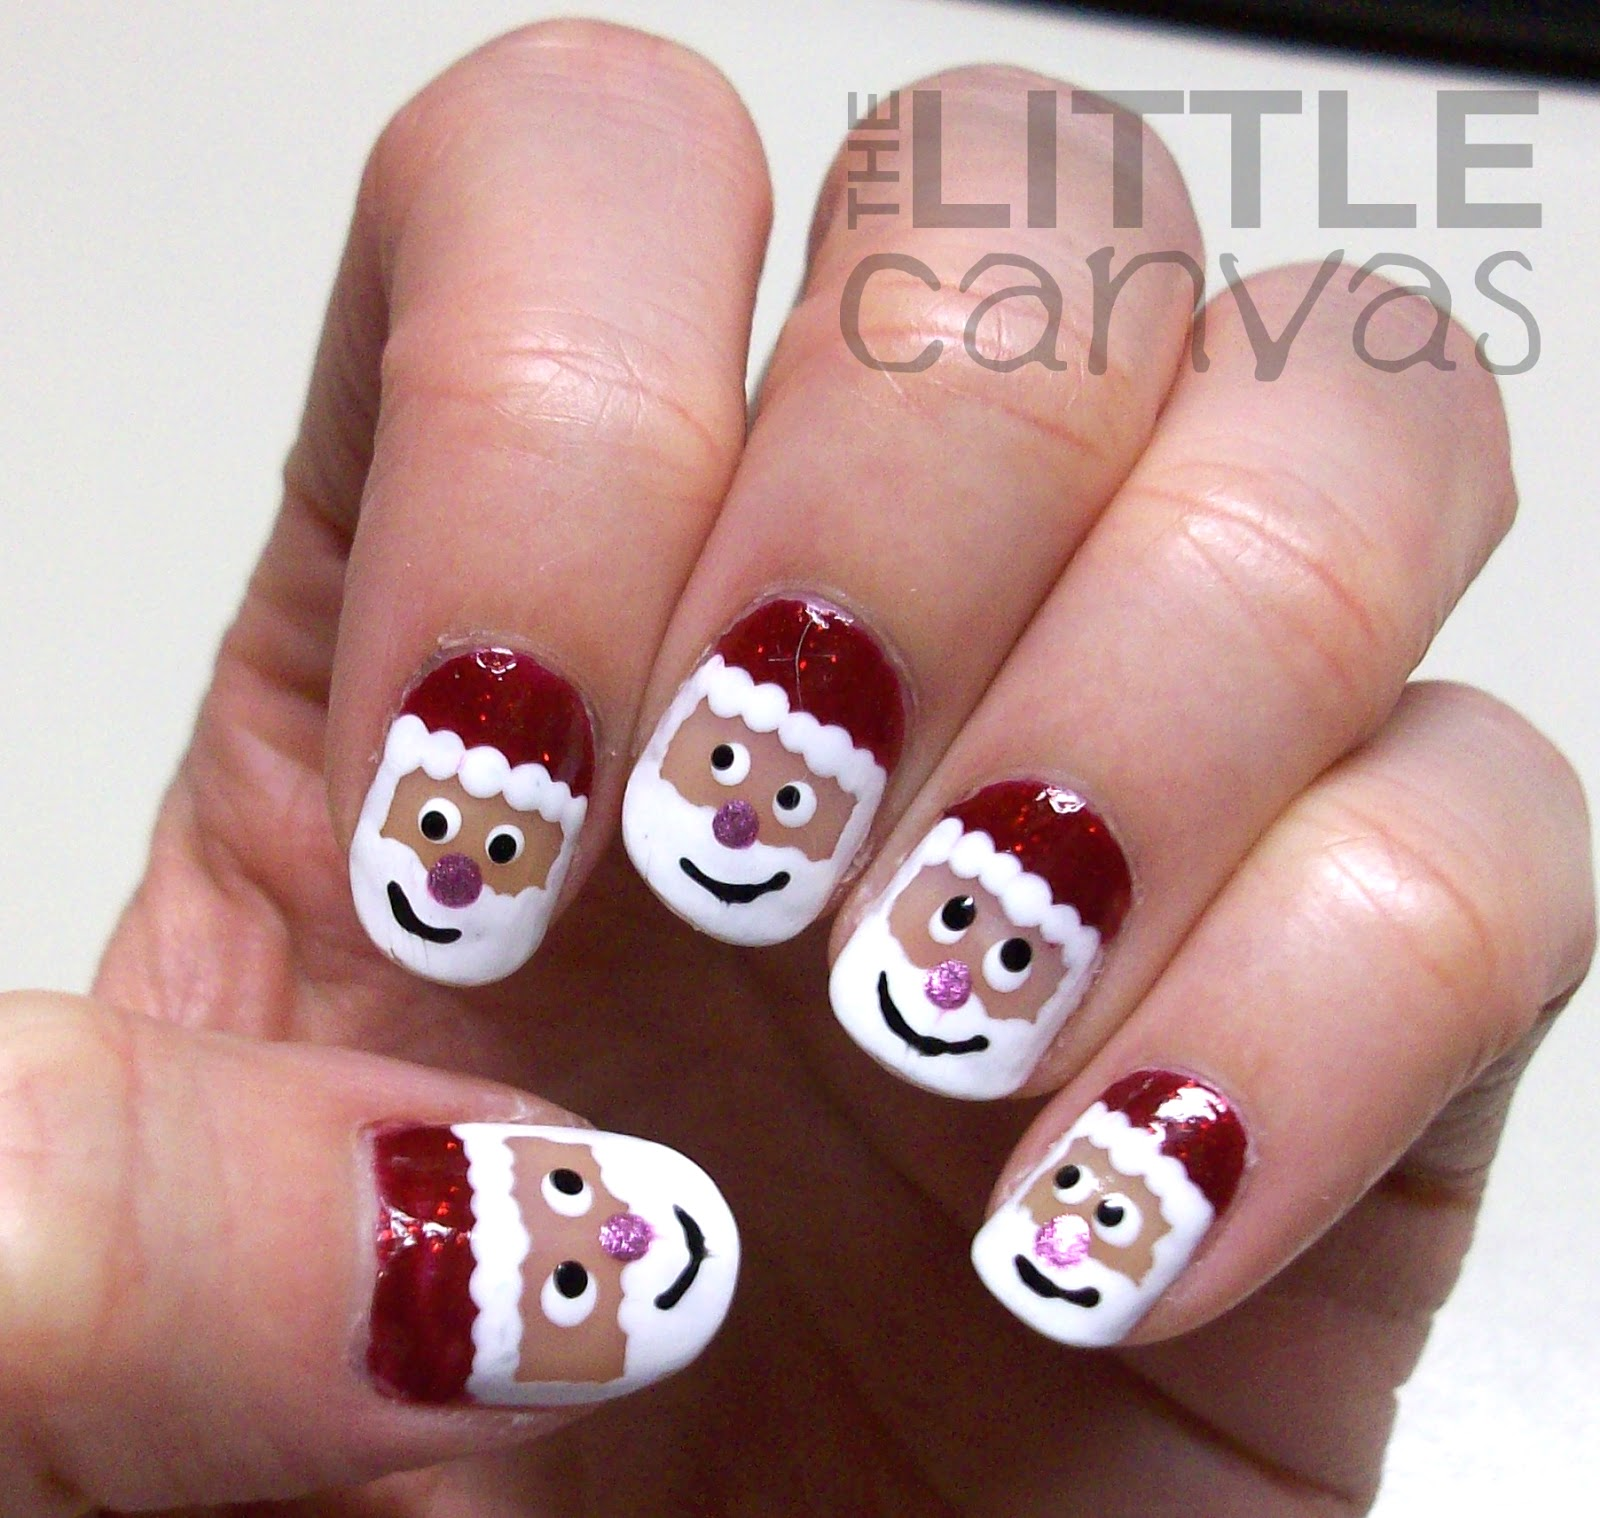 Santa claus nail art the little canvas ill let you be the judge please excuse my last photo with its random colors its orangier than i would have liked but it showed the thumb art the best prinsesfo Choice Image